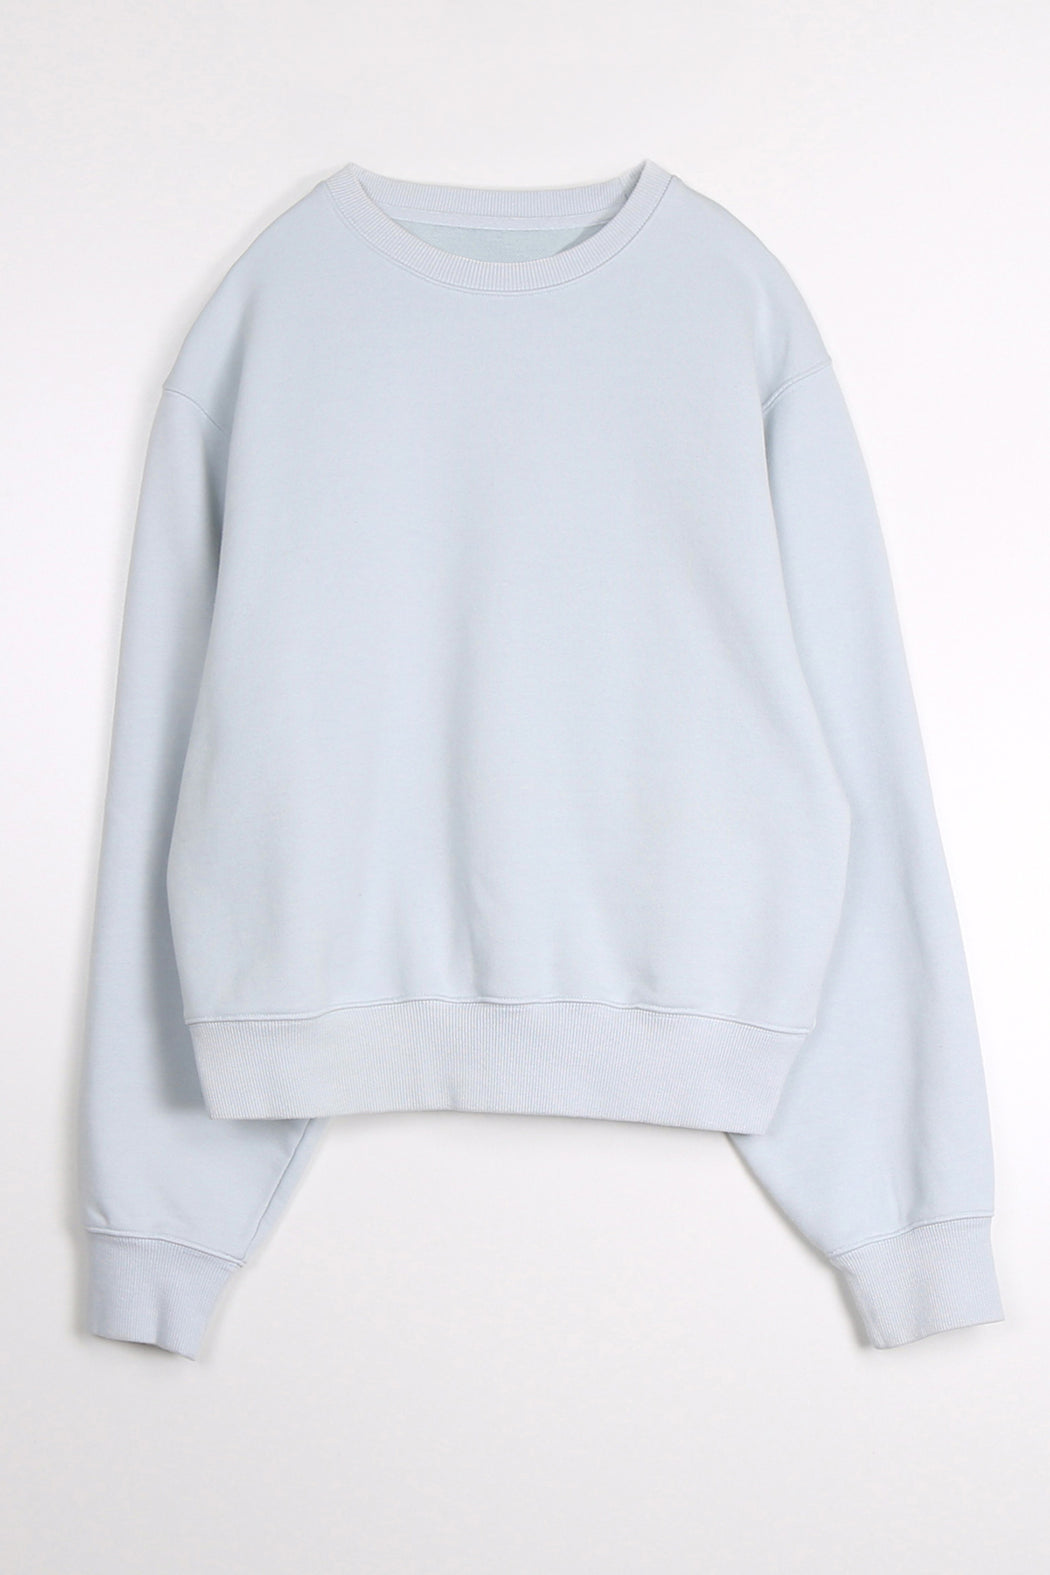 Brunette-the-Label-Best-Friend-Crew-Neck-Sweater-Summer-Sky-Flat